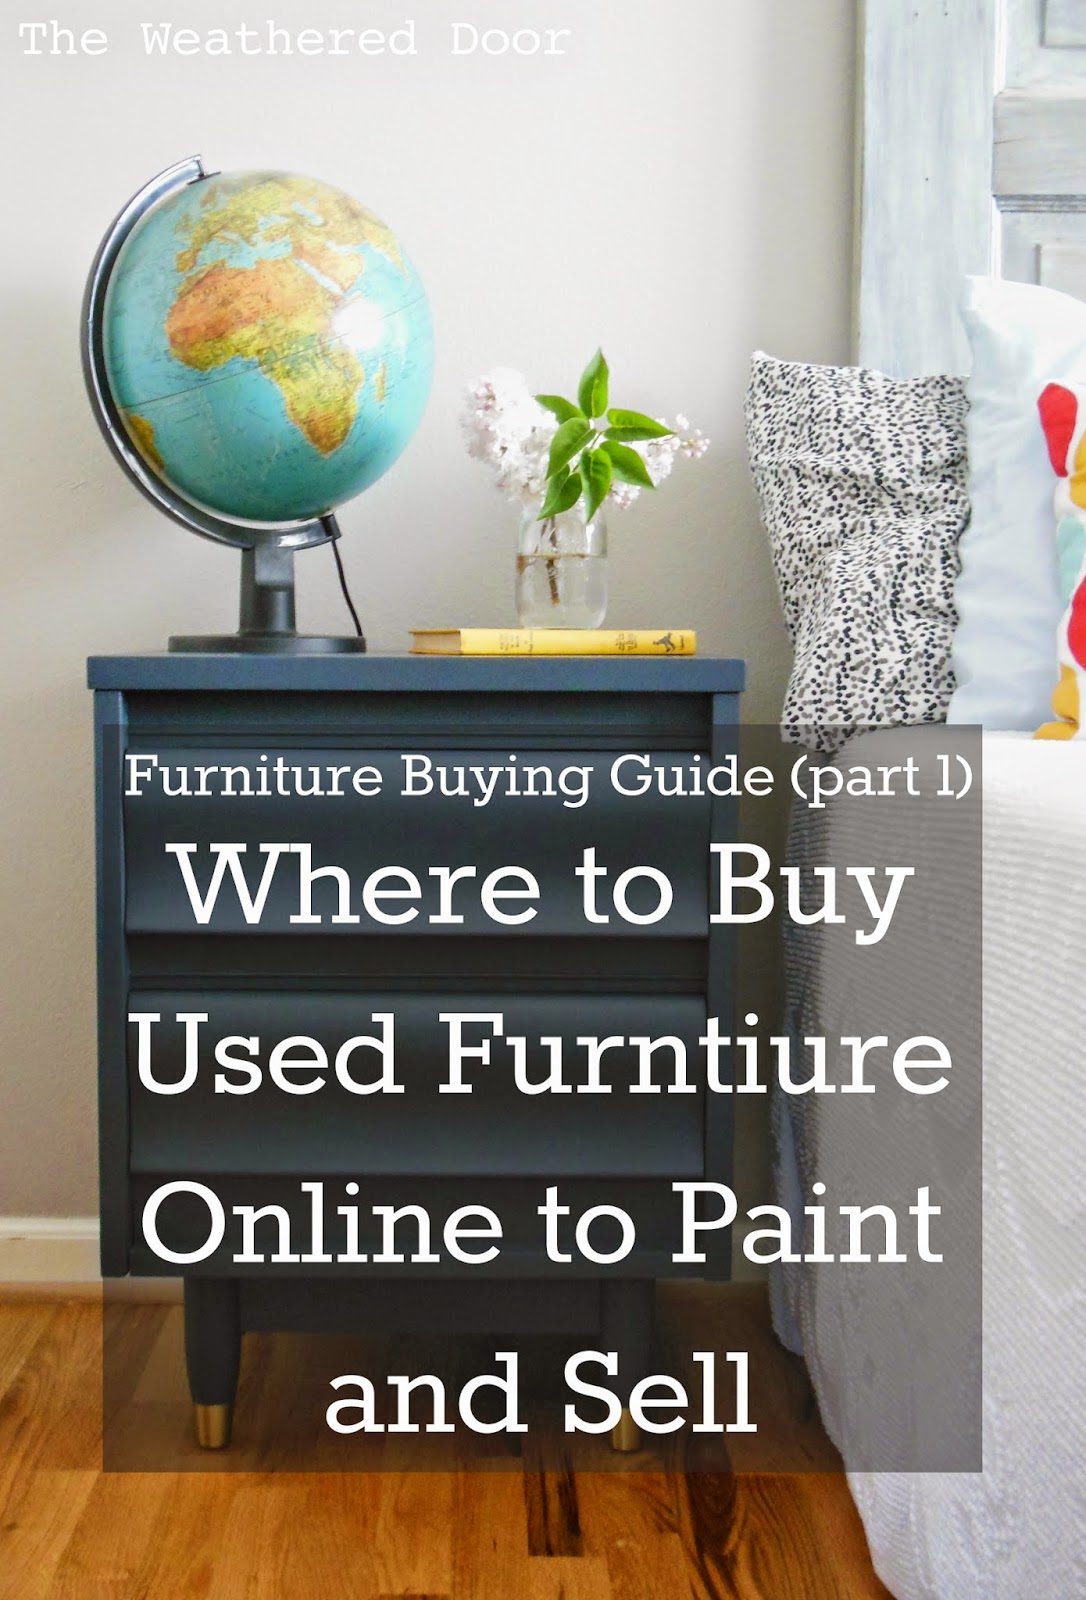 Awe Inspiring Furniture Buying Guide Where To Look For And Buy Used Home Interior And Landscaping Analalmasignezvosmurscom